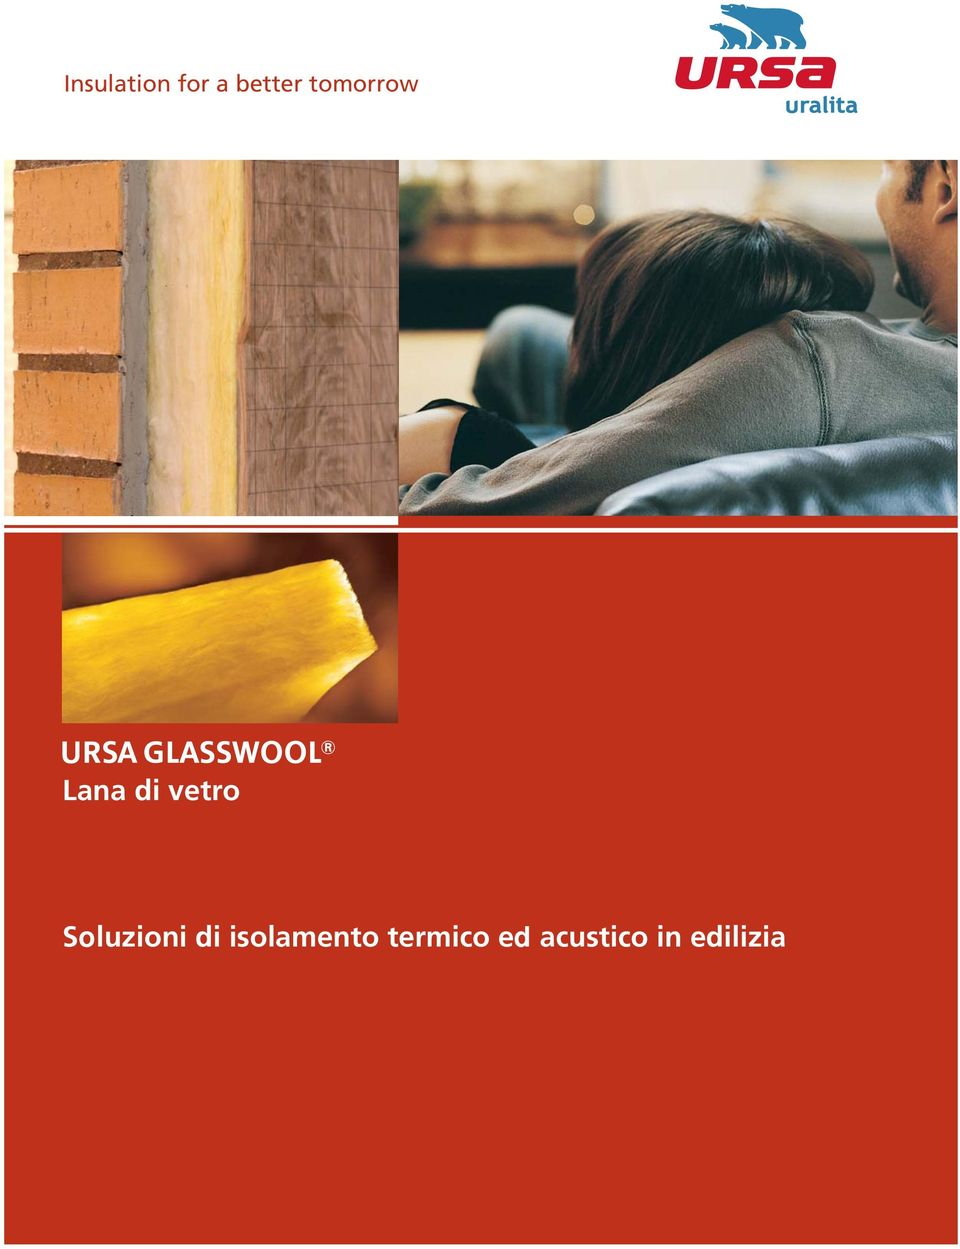 Insulation for a better tomorrow lana di vetro soluzioni for Which insulation is better